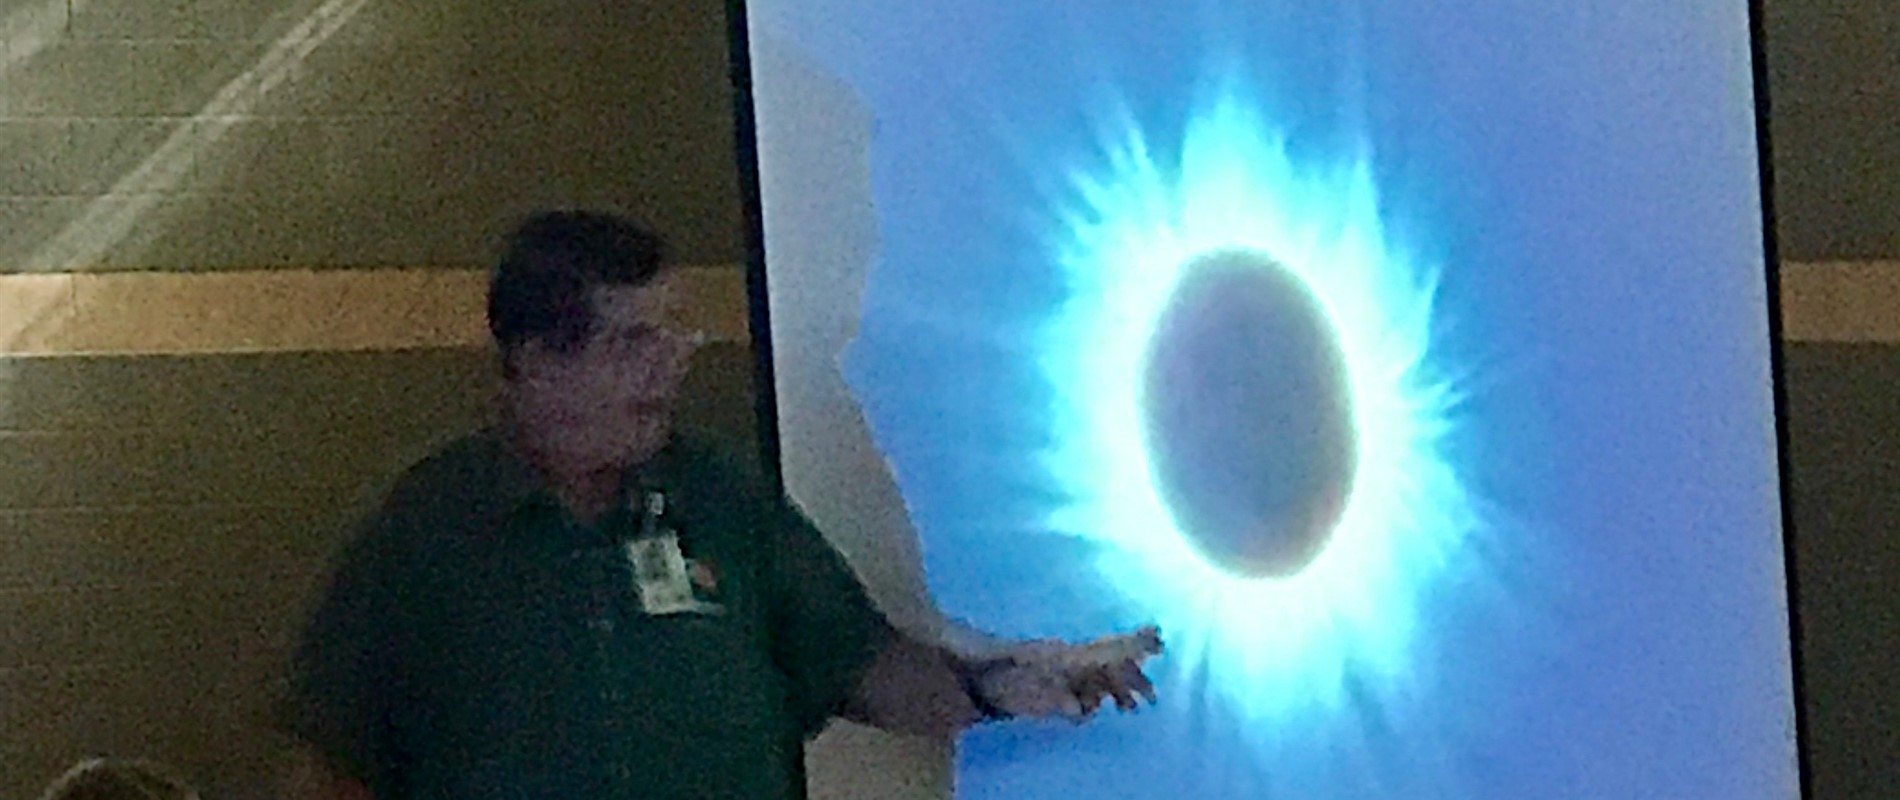 A special guest presentation on the August 21st Solar Eclipse!